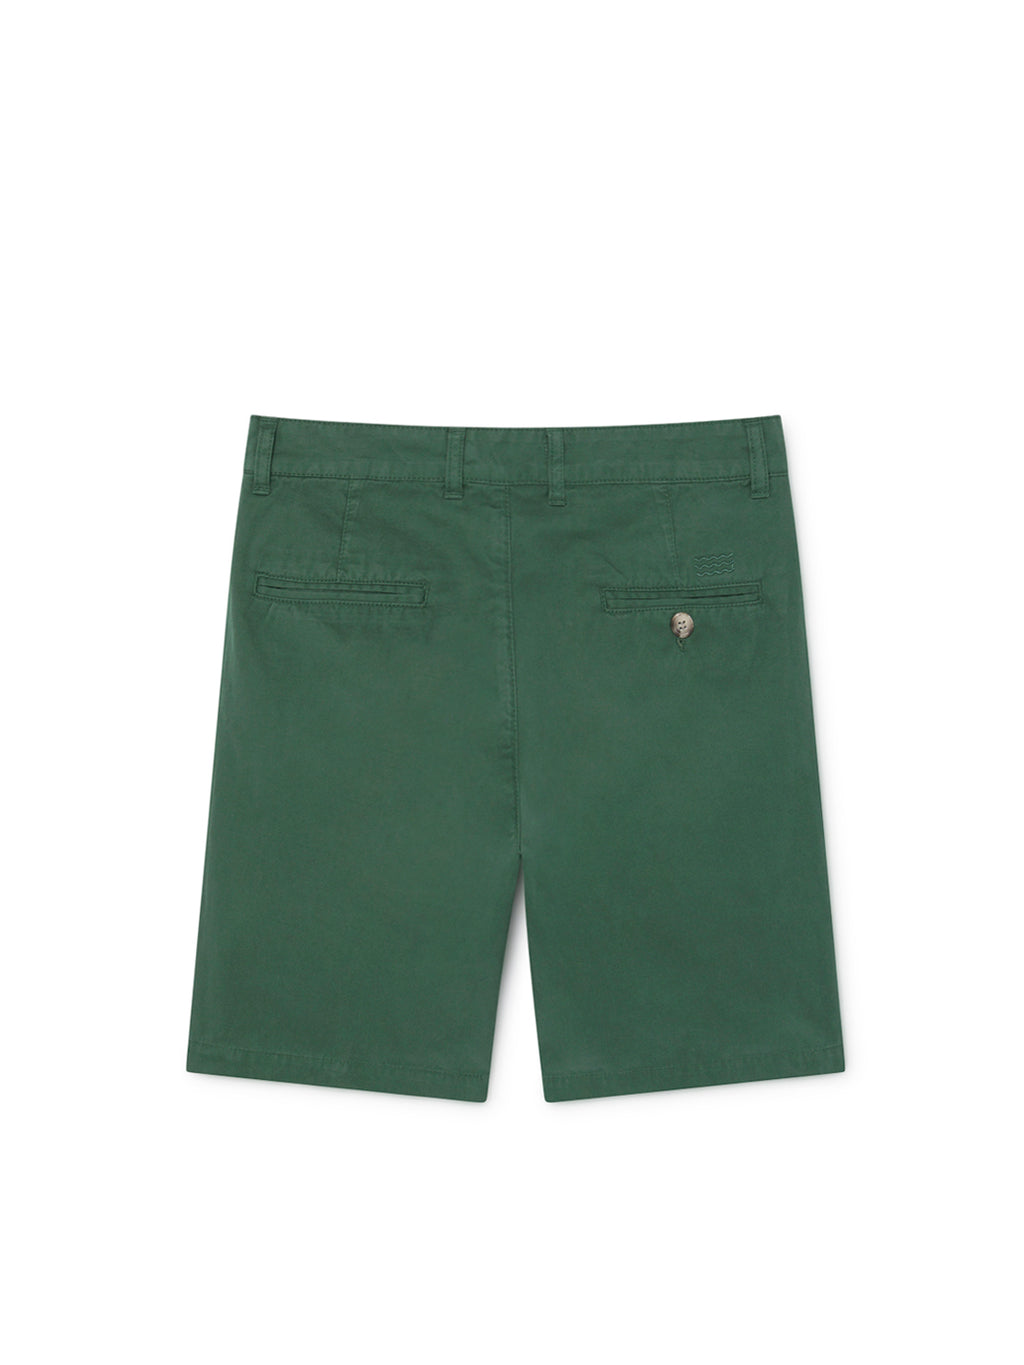 TWOTHIRDS Mens Shorts: La Nave - Trekking Green back